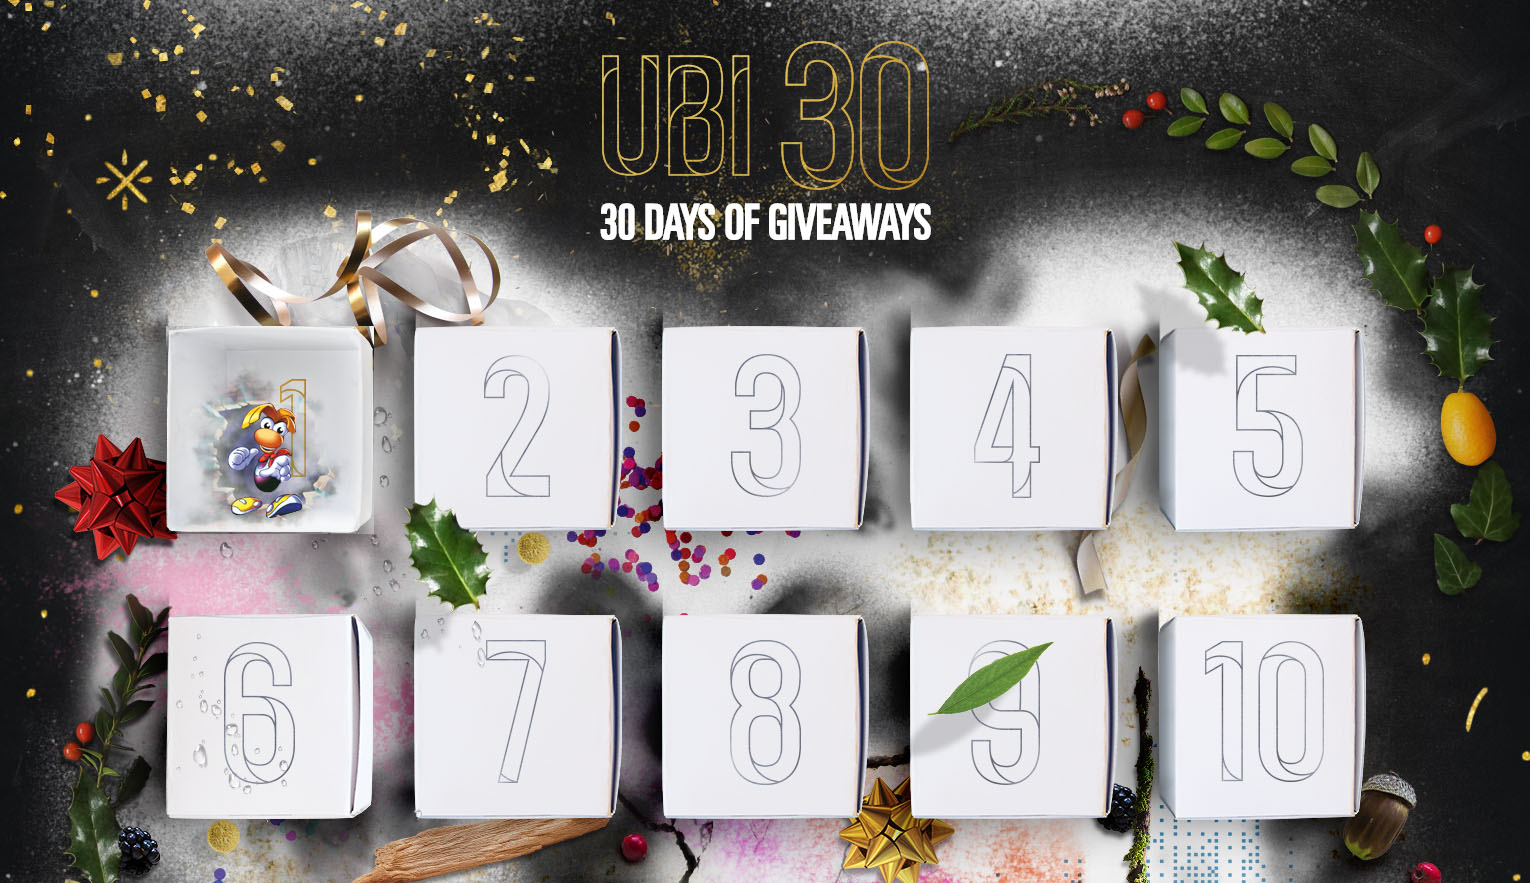 Full List of UBI 30 Days of Giveaways Revealed